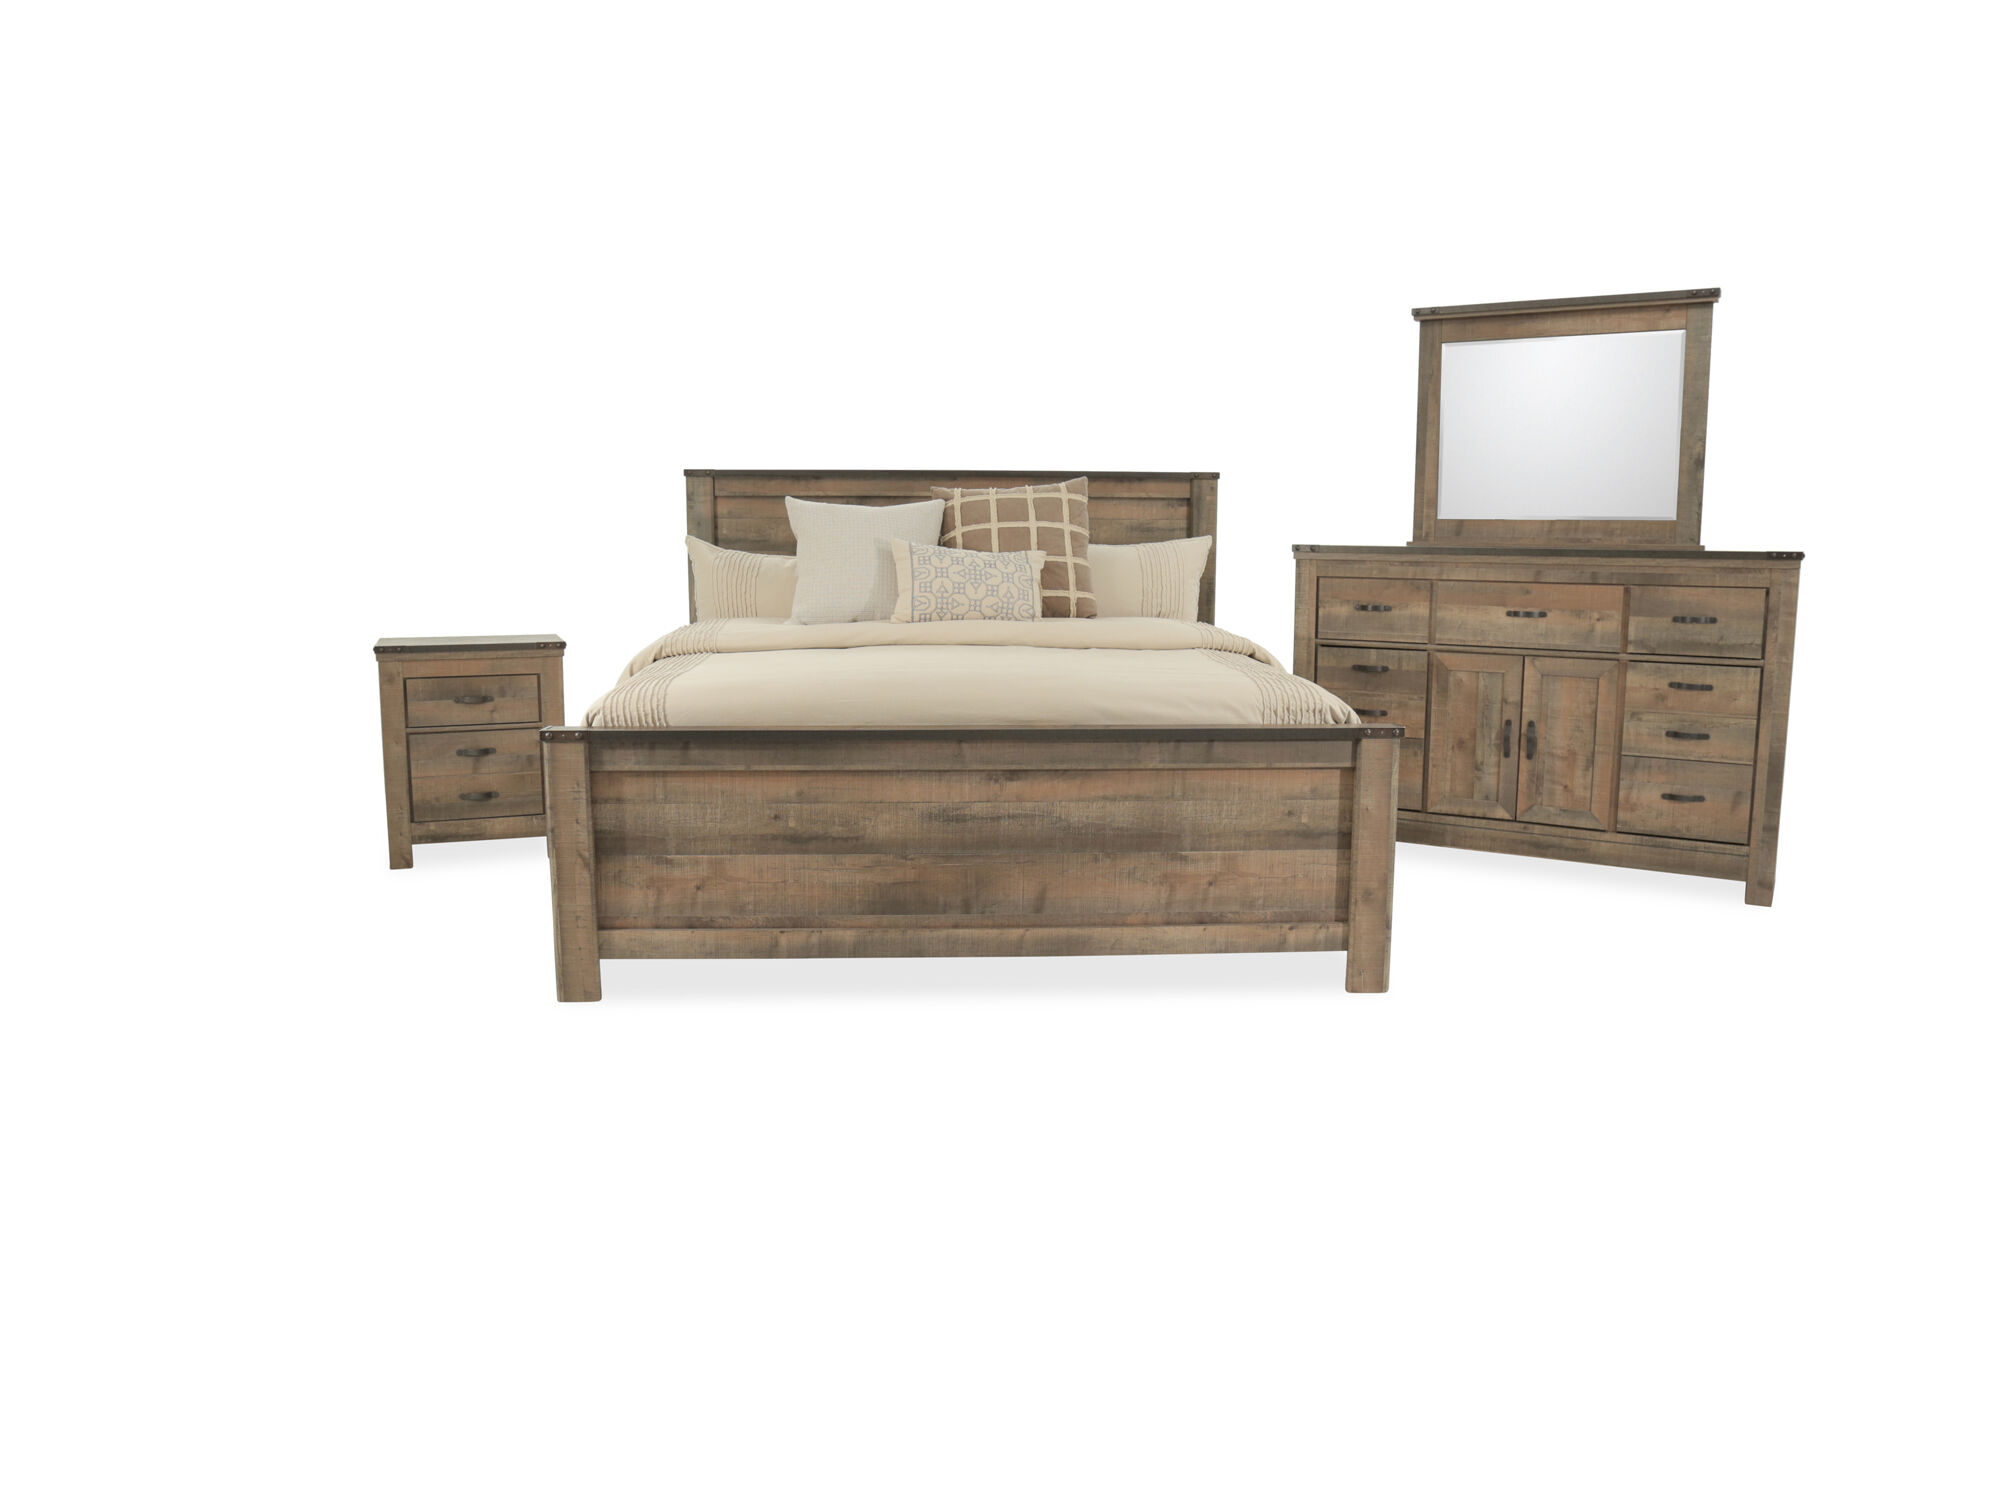 Four piece rustic farmhouse bedroom set in brown mathis brothers furniture